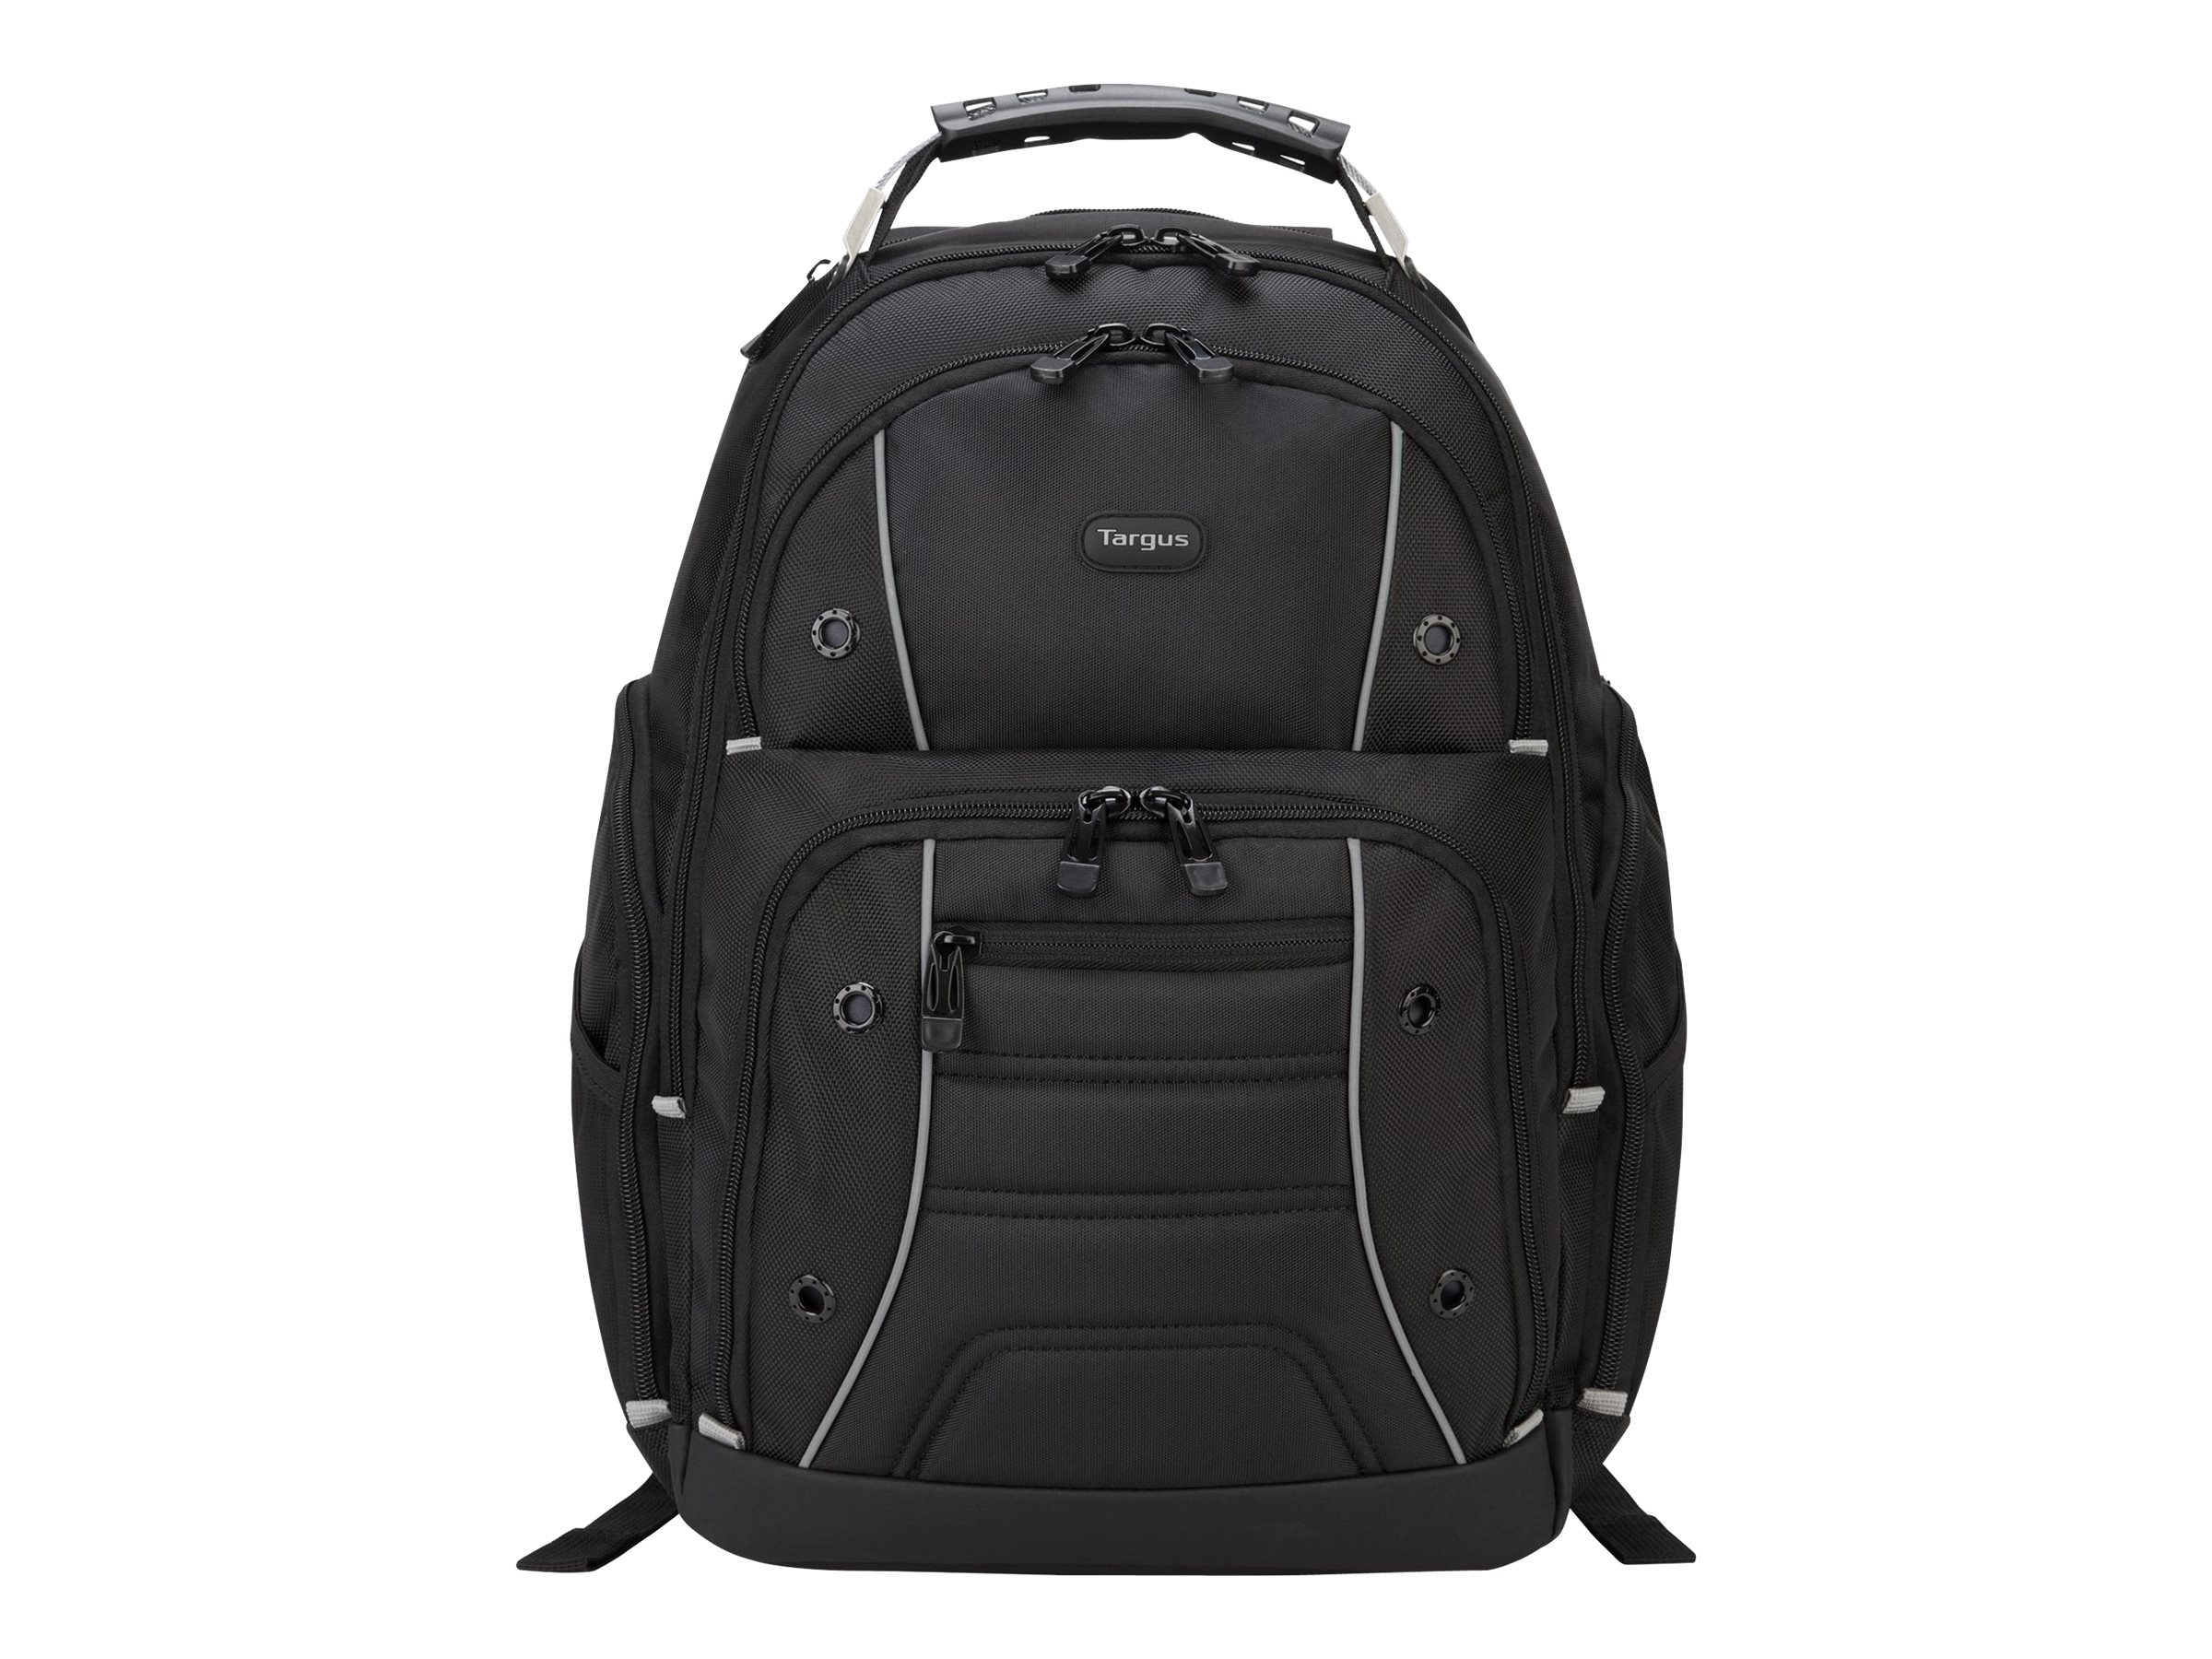 Targus Drifter Checkpoint-friendly Backpack APS 17.3, Black, TSB847